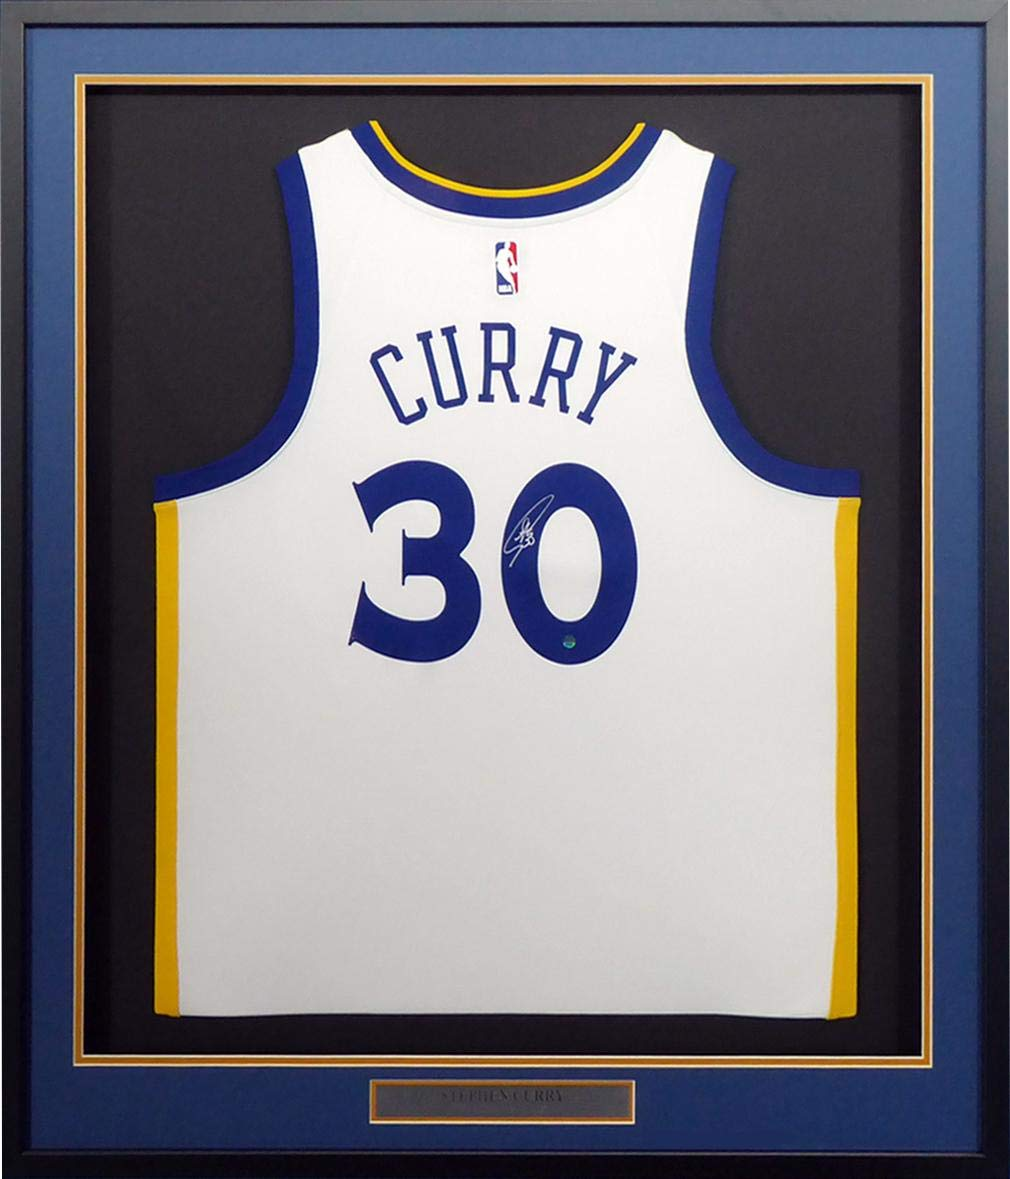 reputable site 28744 62d3c Stephen Curry Signed Jersey - Framed Nike White Holo ...